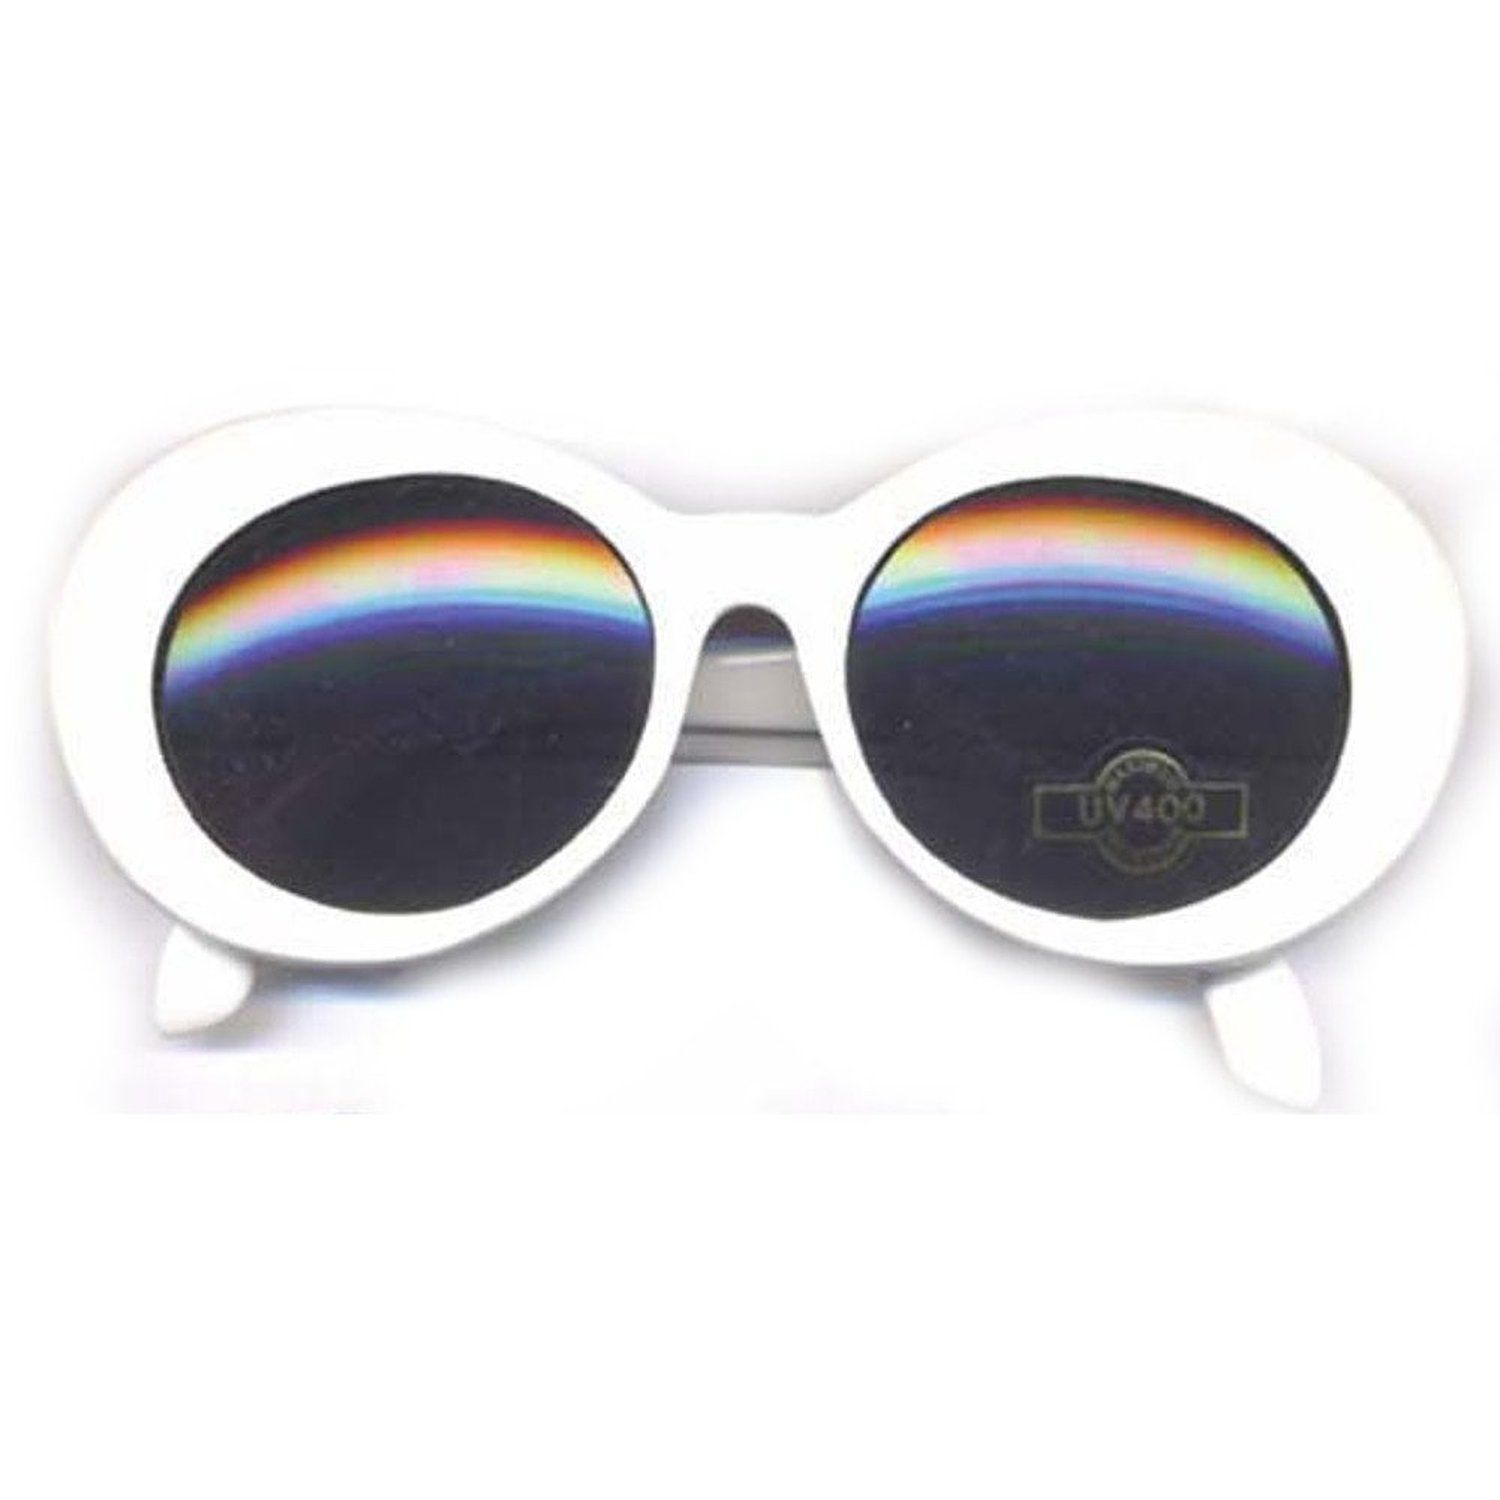 Kurt Cobain White Round Sunglasses: Amazon.co.uk: Clothing